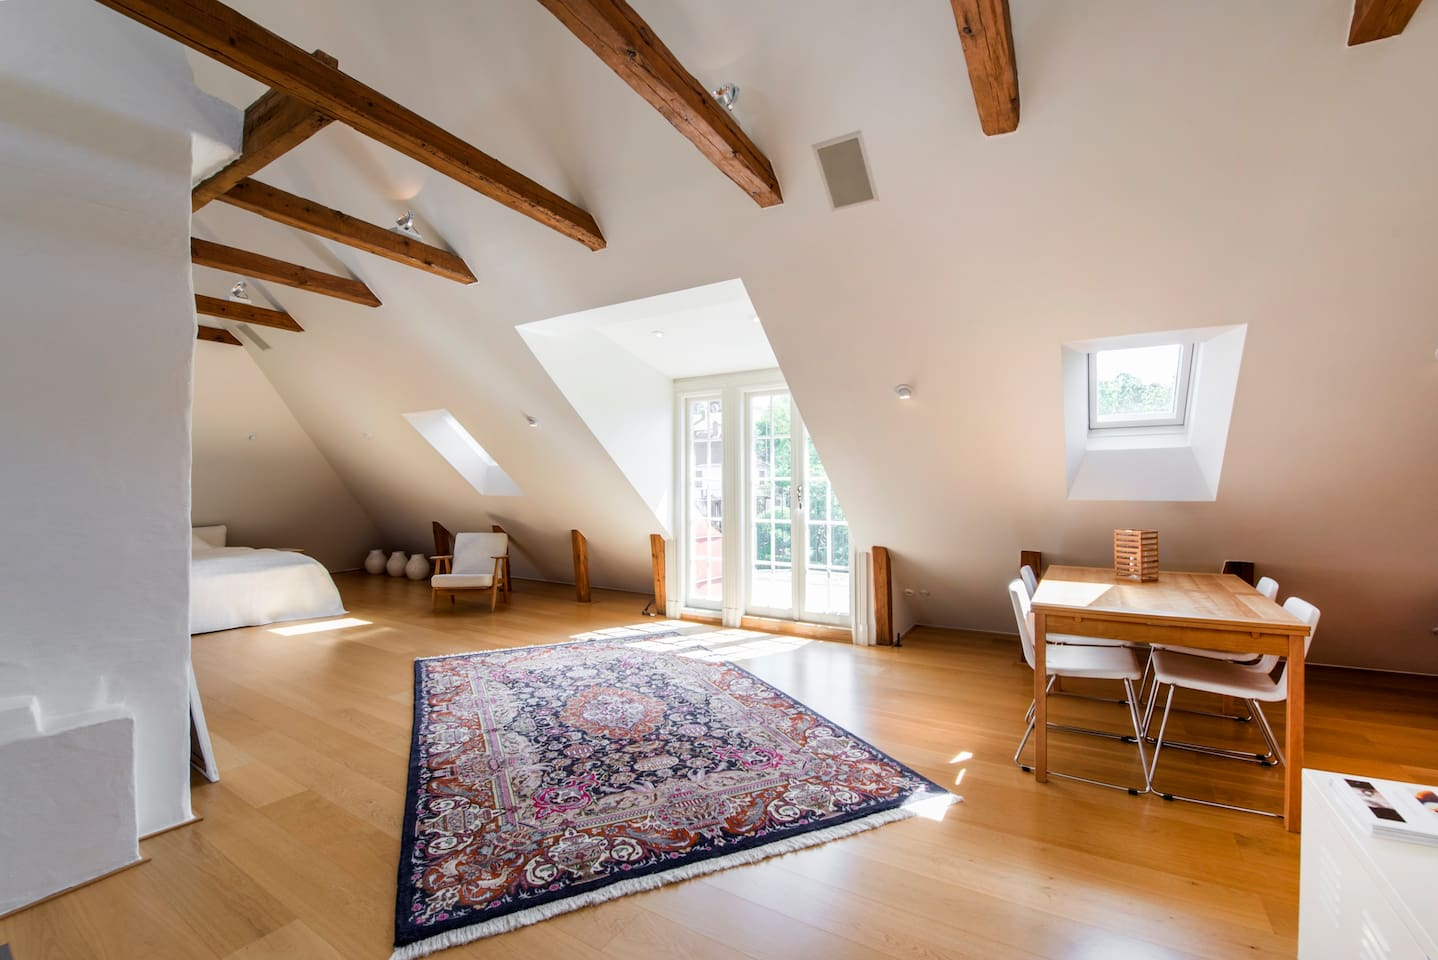 Large attic studio with 2 double beds, walk-in closet and roof-top private balcony